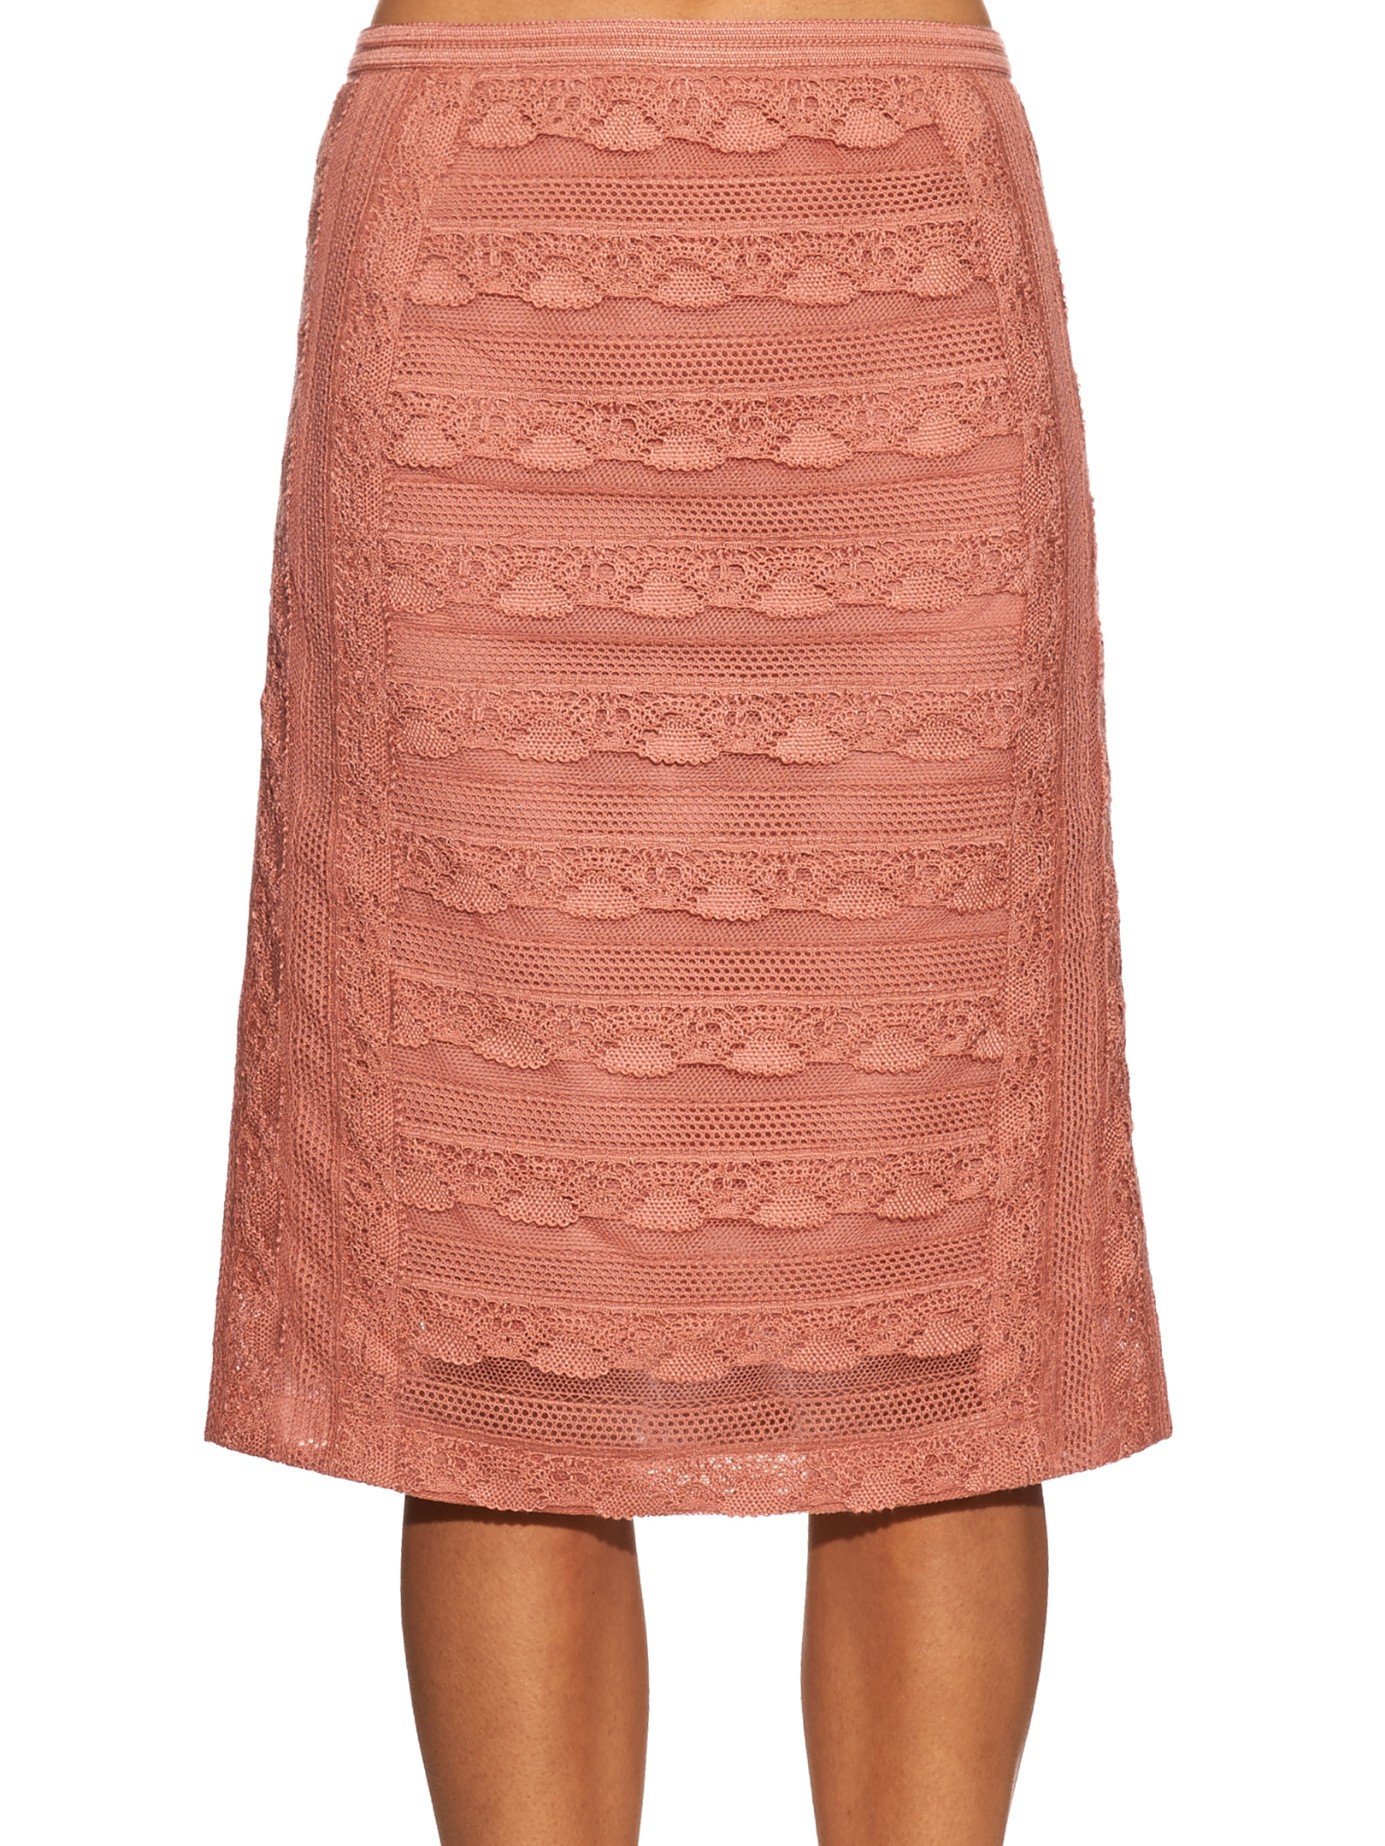 burberry prorsum tiered lace pencil skirt in pink lyst